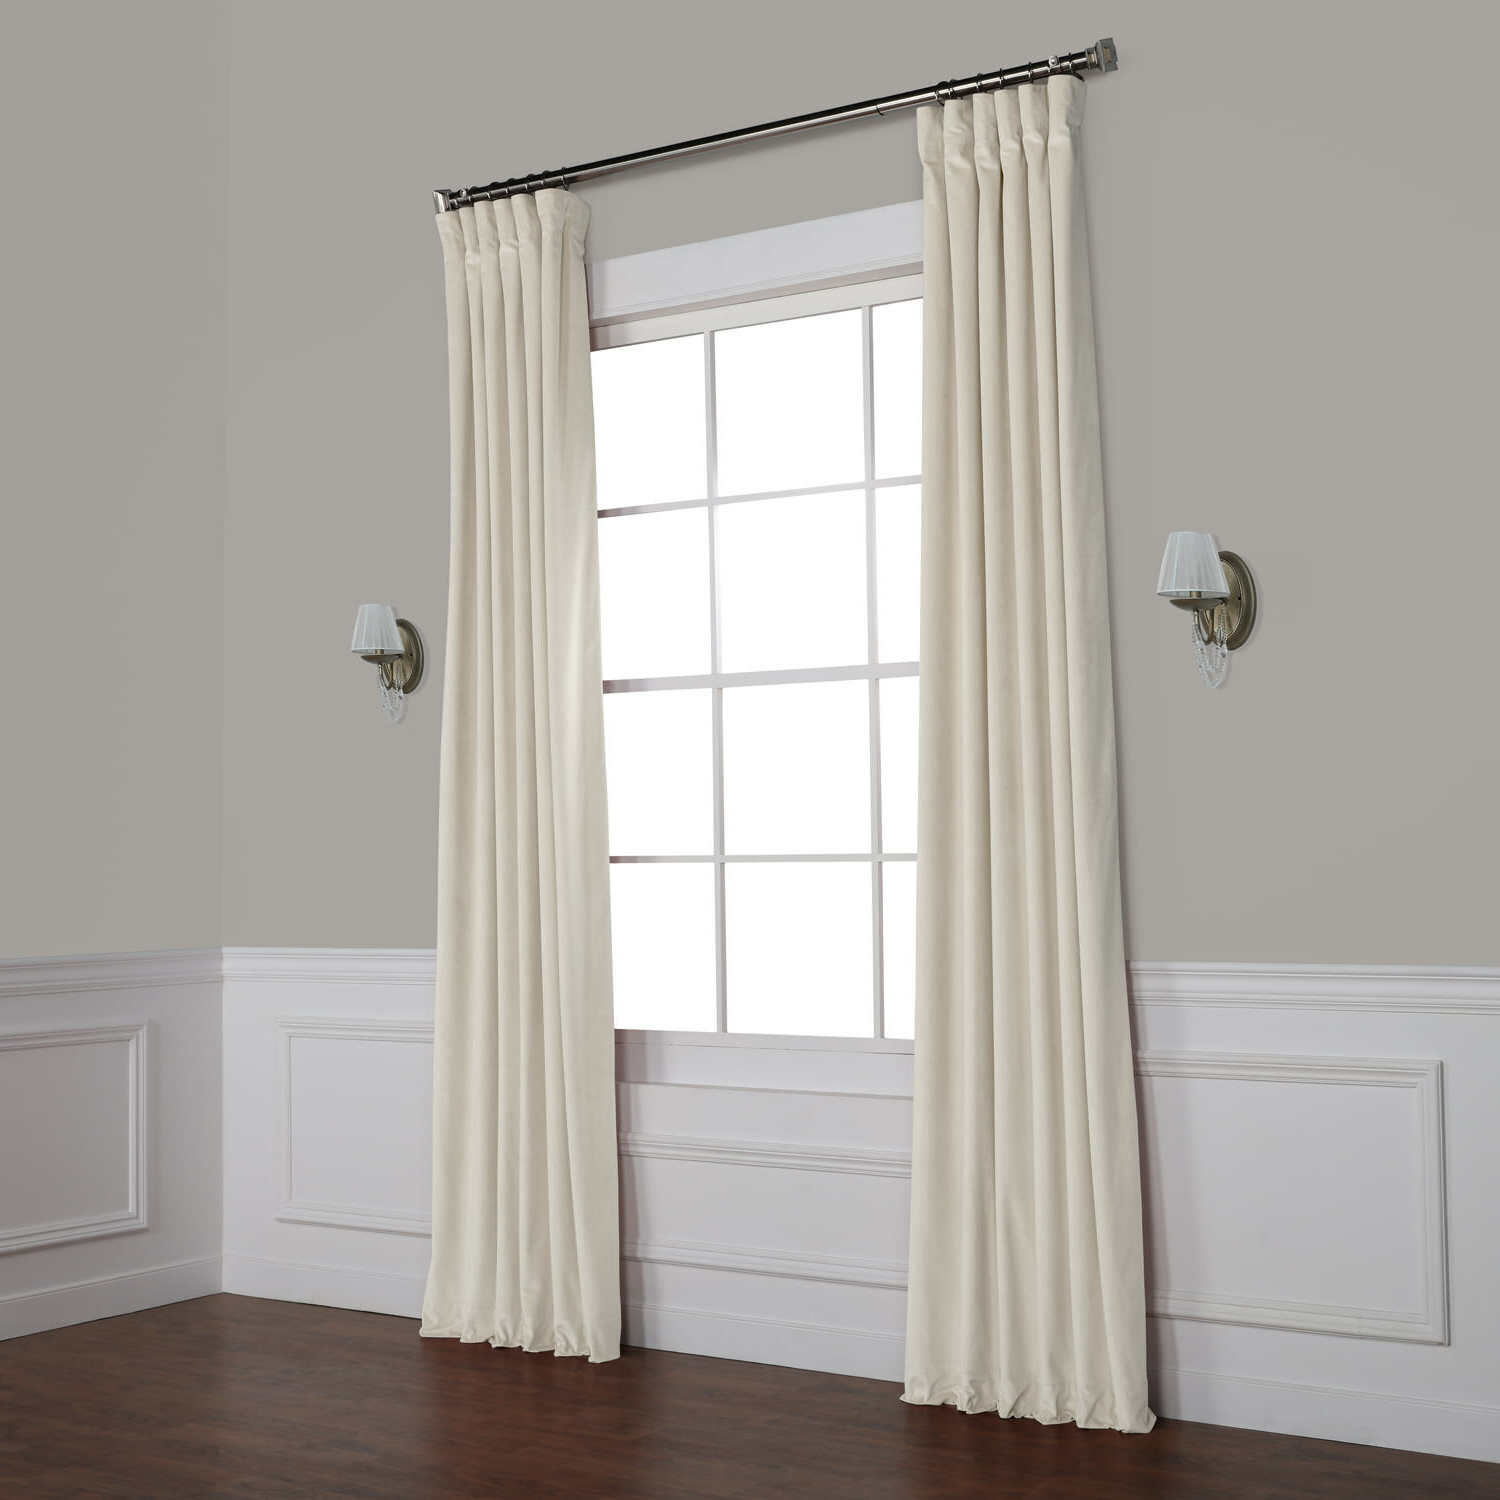 Heritage Plush Velvet Curtains Pertaining To Widely Used Livia Riverton Solid Heritage Plush Velvet Rod Pocket Single Curtain Panel (Gallery 20 of 20)